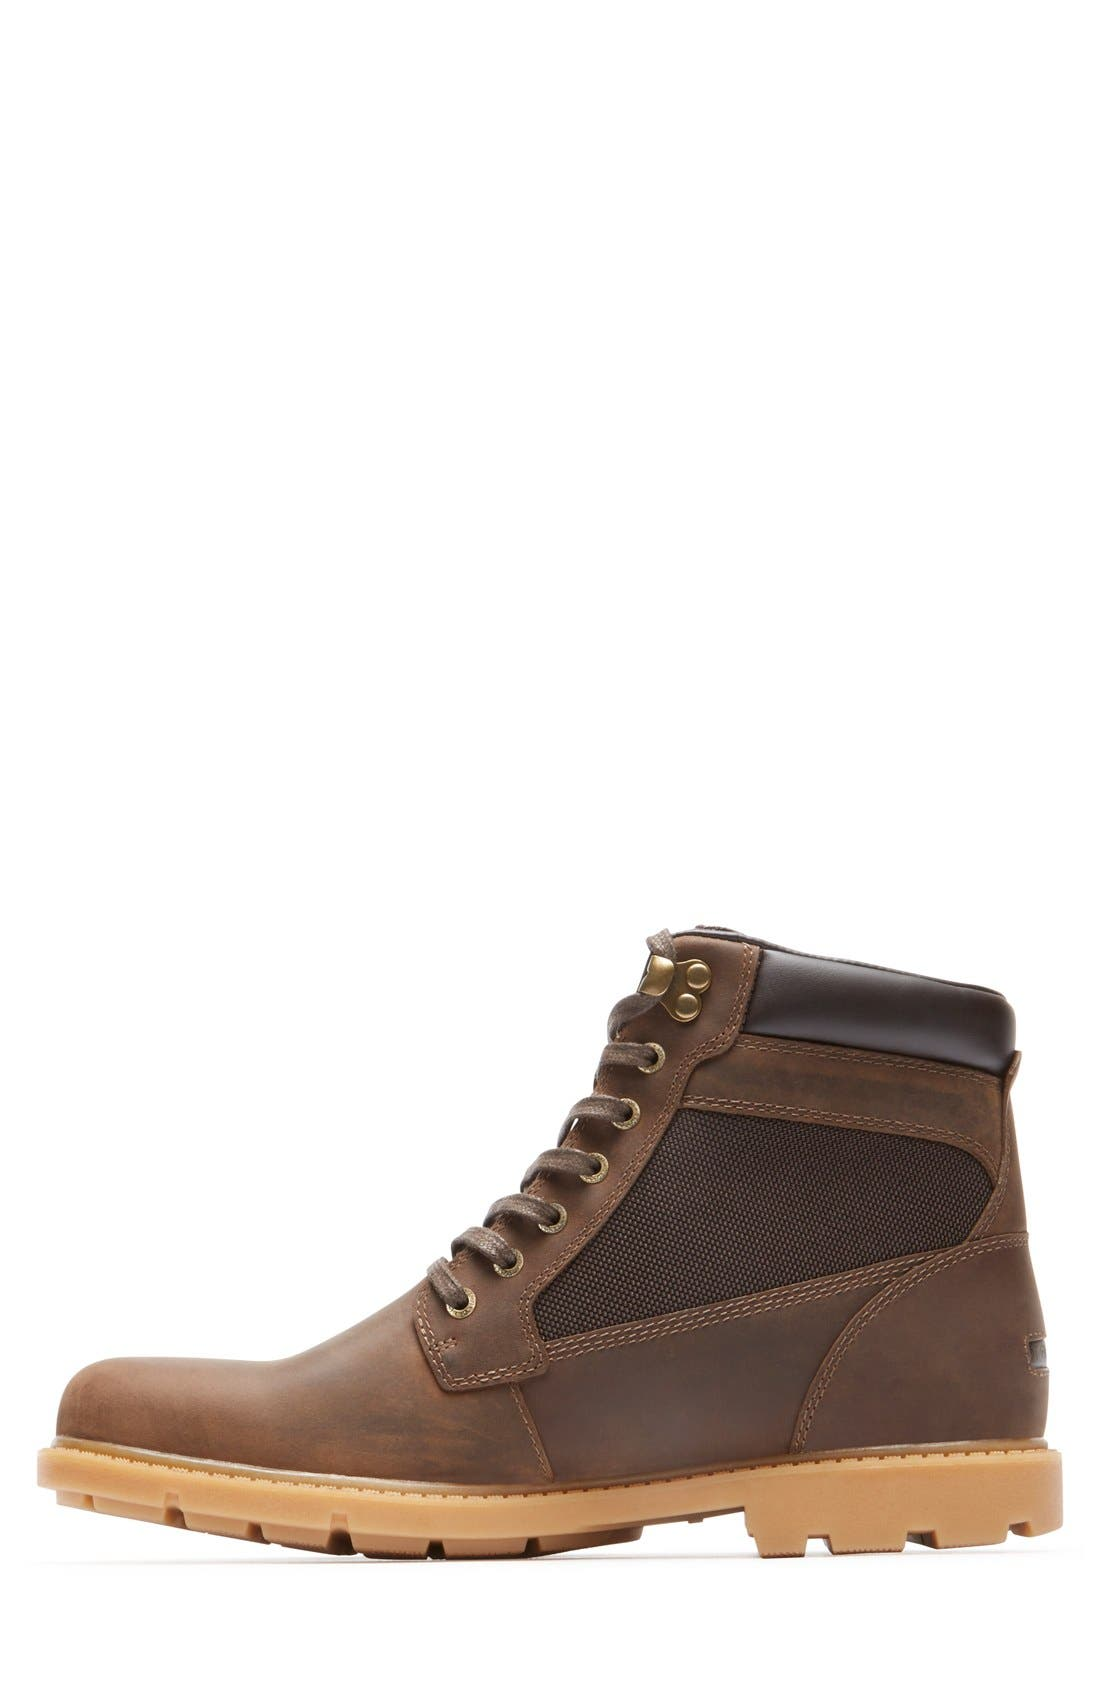 Alternate Image 2  - Rockport 'Rugged Bucks High' Waterproof Boot (Men)